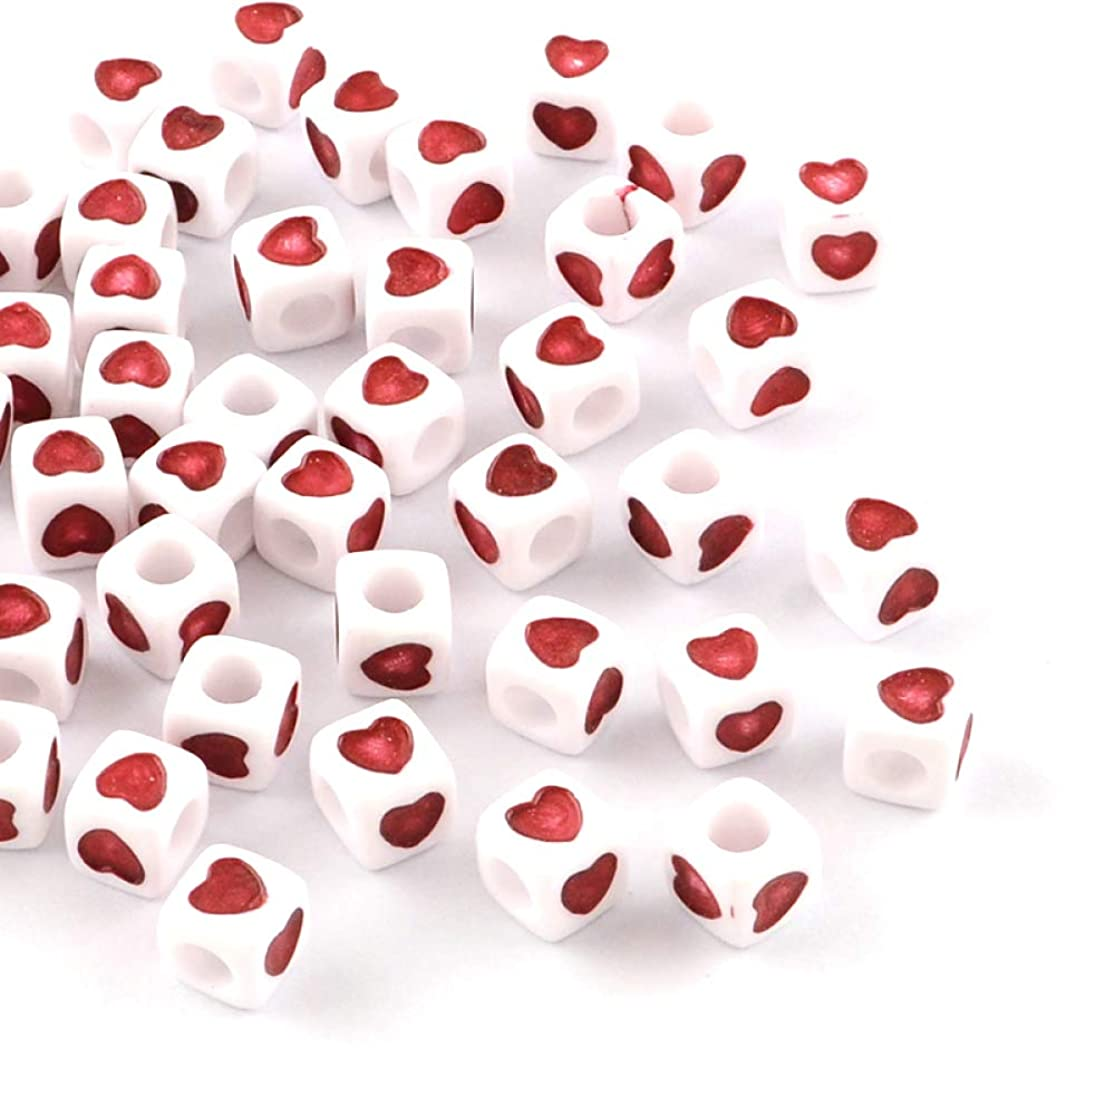 Beadthoven 100-Piece 7x7x7mm Opaque Acrylic Heart Beads European Large Hole Cube Beads with Red Heart for Jewelry Making Handmade Accessories Kid's Handcrafts Finding Supplies dvmtdeeu8